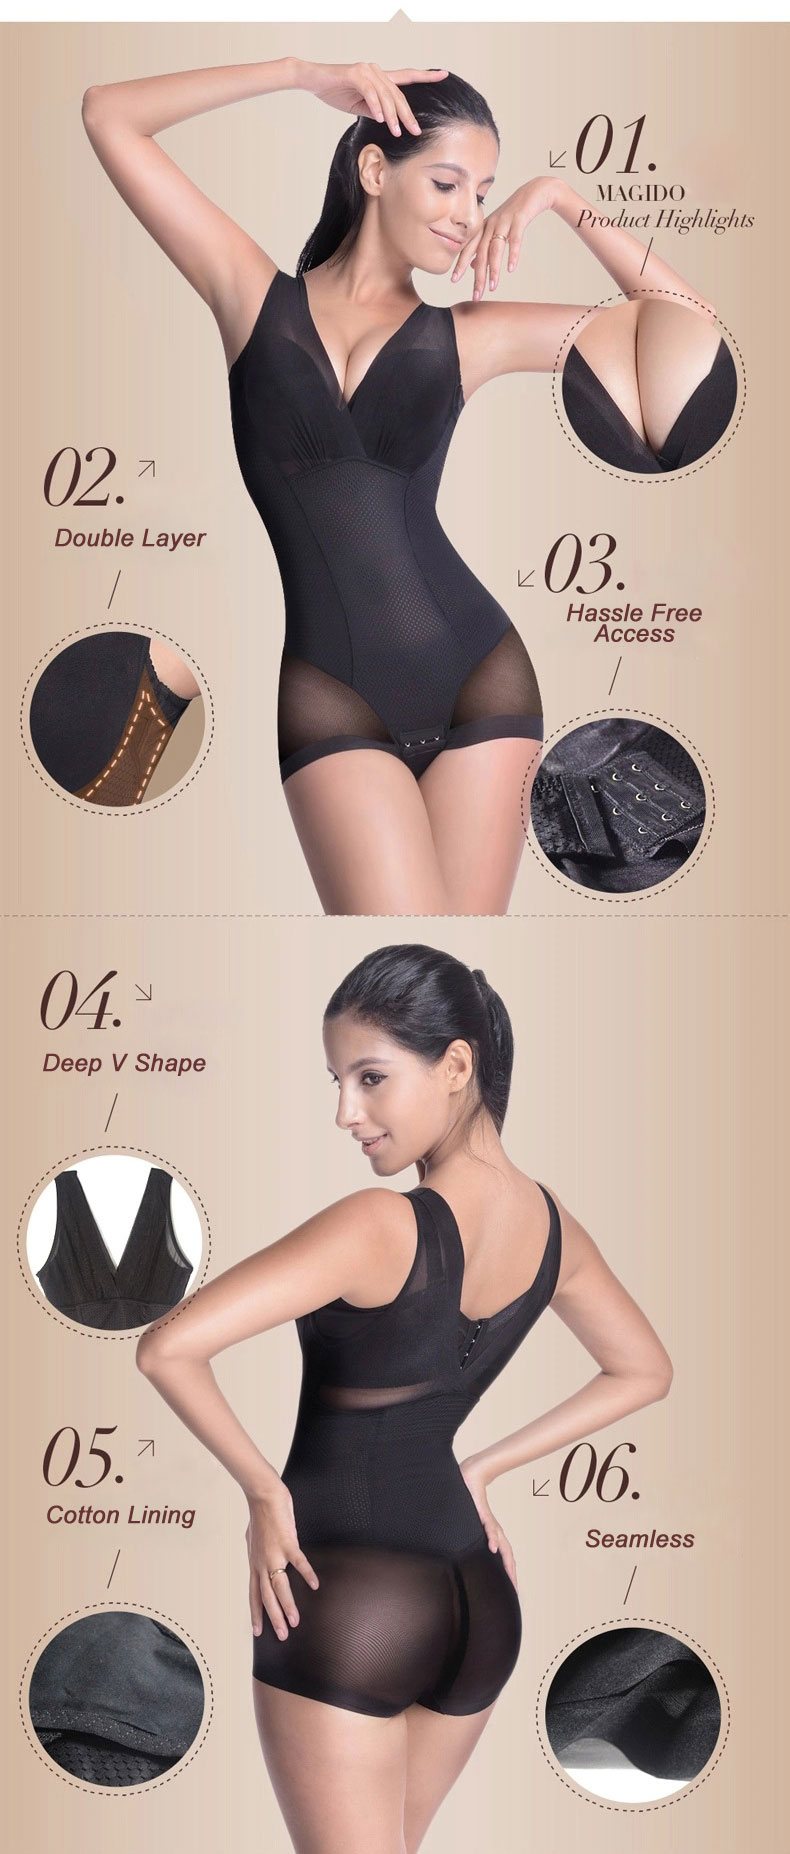 3-in-1 Award Winning Ultra Tummy Flattening Super Waist Slimmer Bust Lifting Seamless One Piece Bodysuit 4